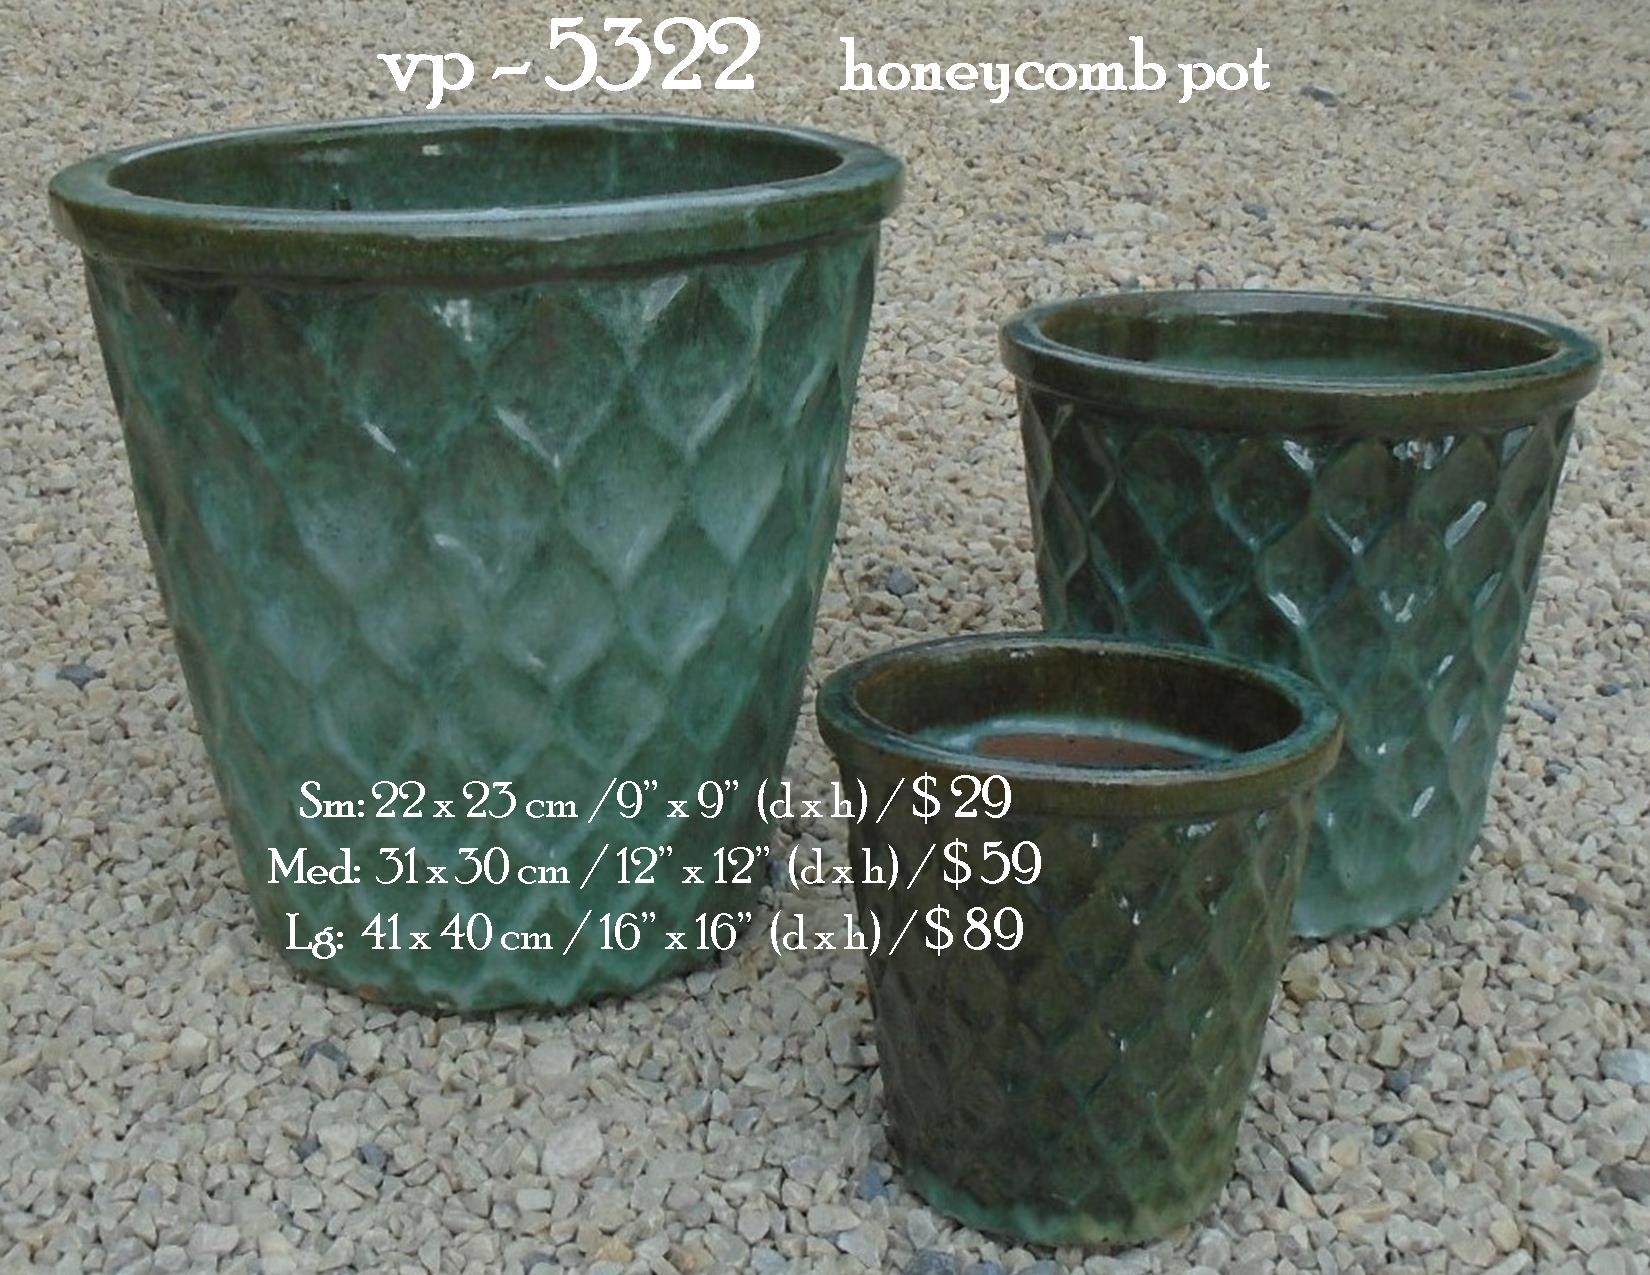 vp - 5322     honeycomb pot